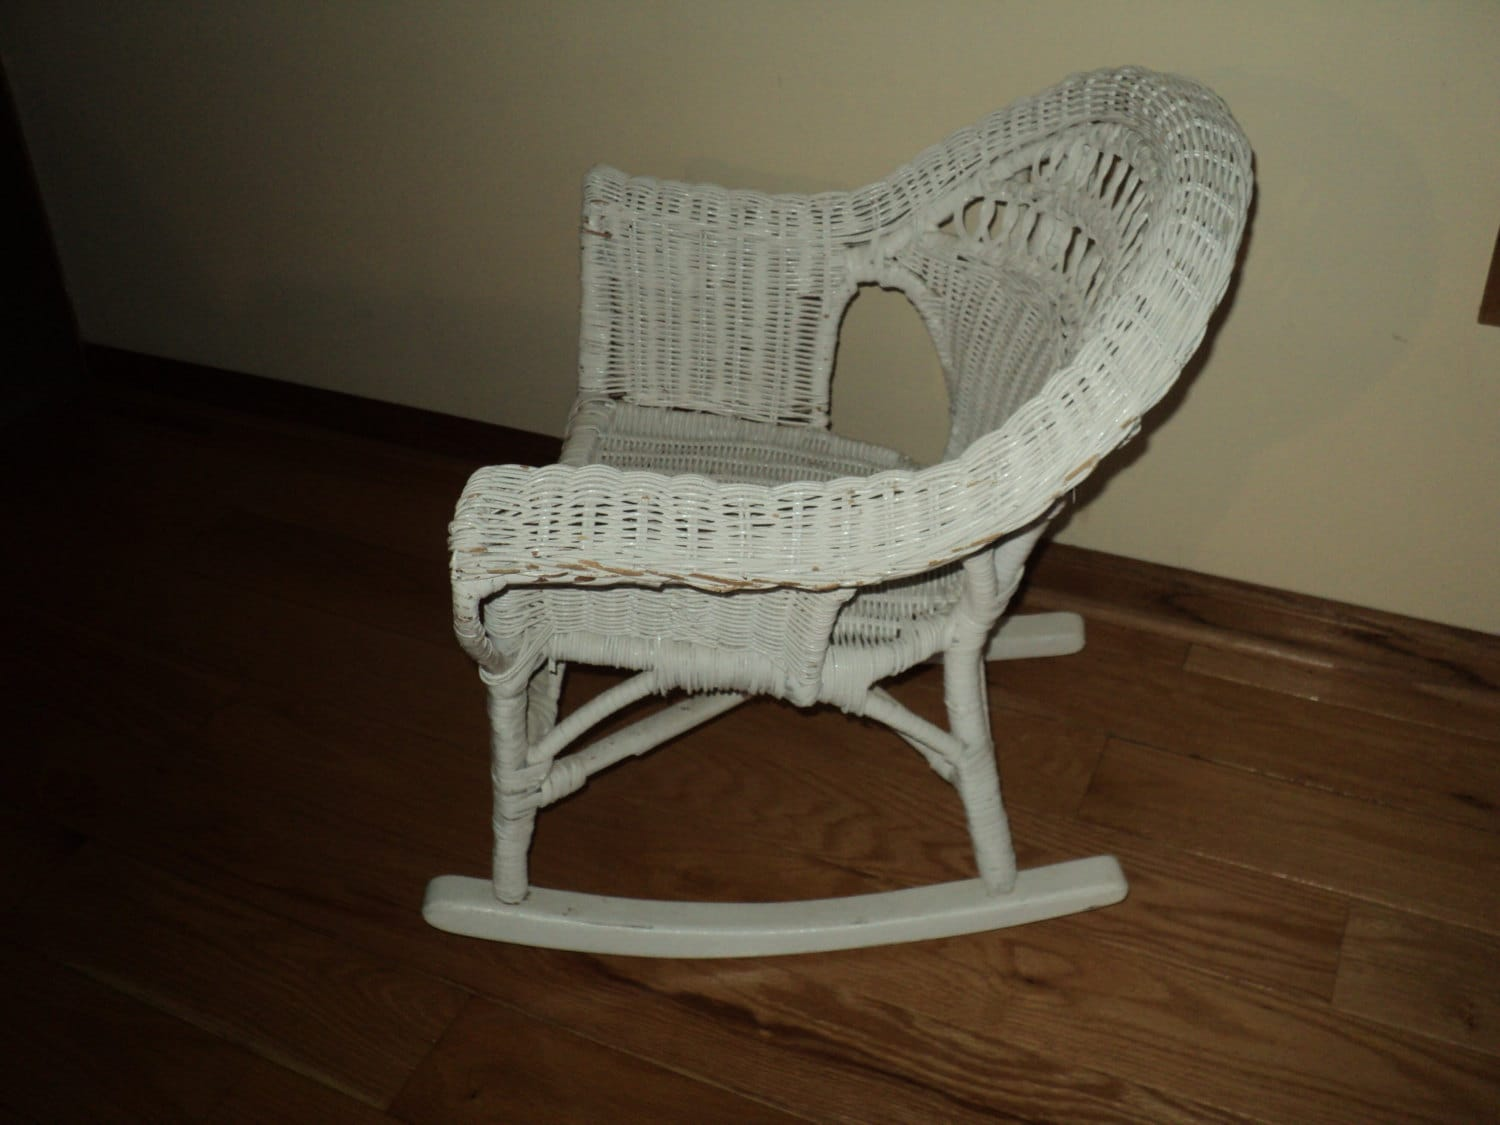 Wicker Rocking Chair Vintage White Wicker Rocking Chair In Very Good Condition With Wonderful Well Developed Painted Patina For Decorative Display Only